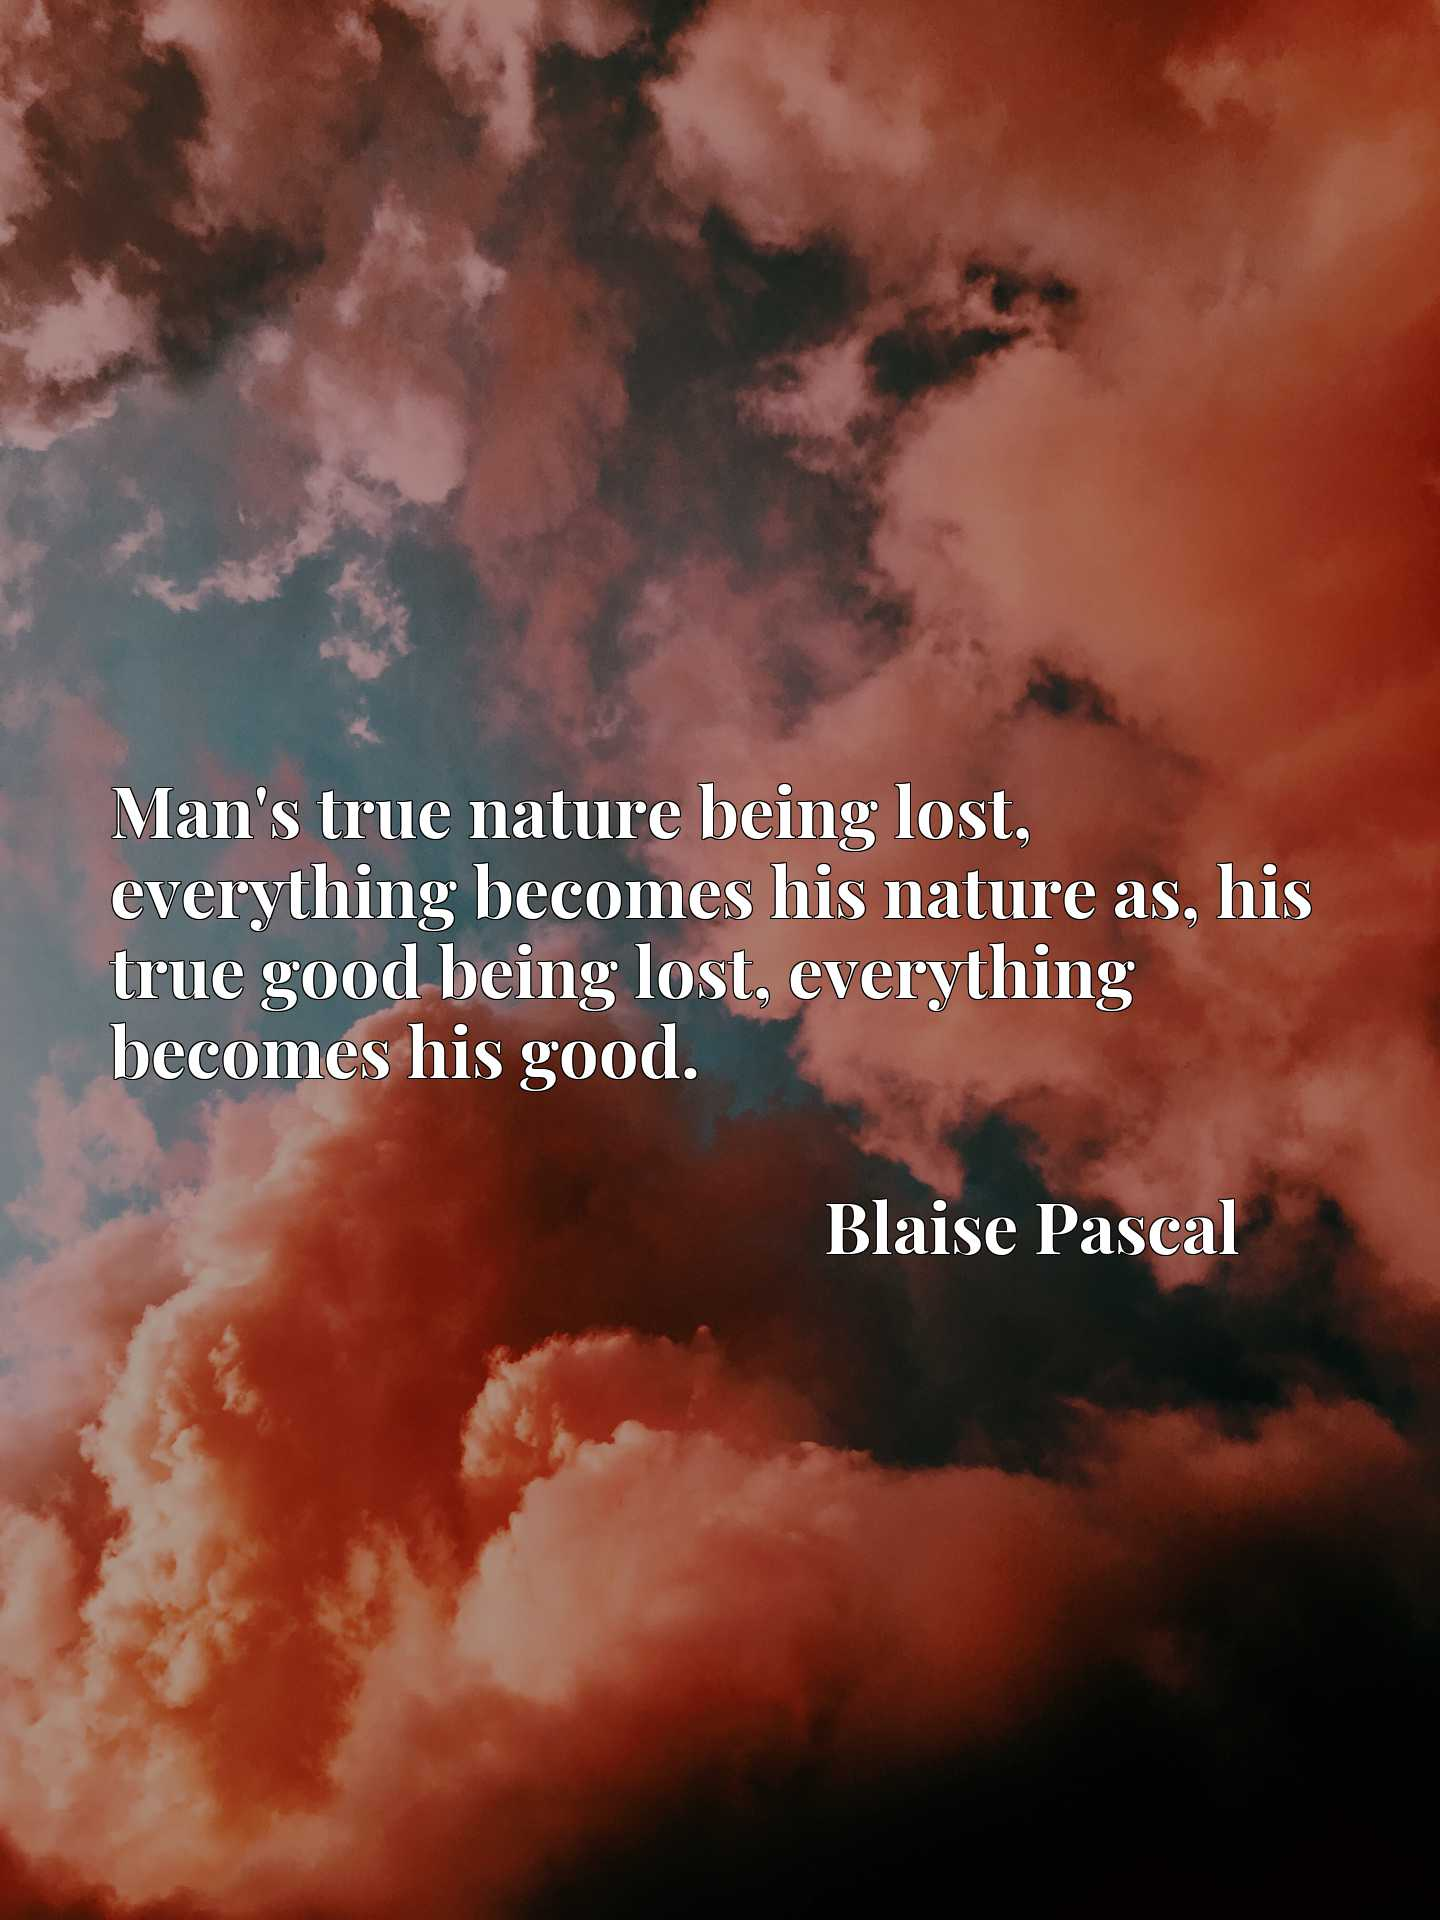 Man's true nature being lost, everything becomes his nature as, his true good being lost, everything becomes his good.